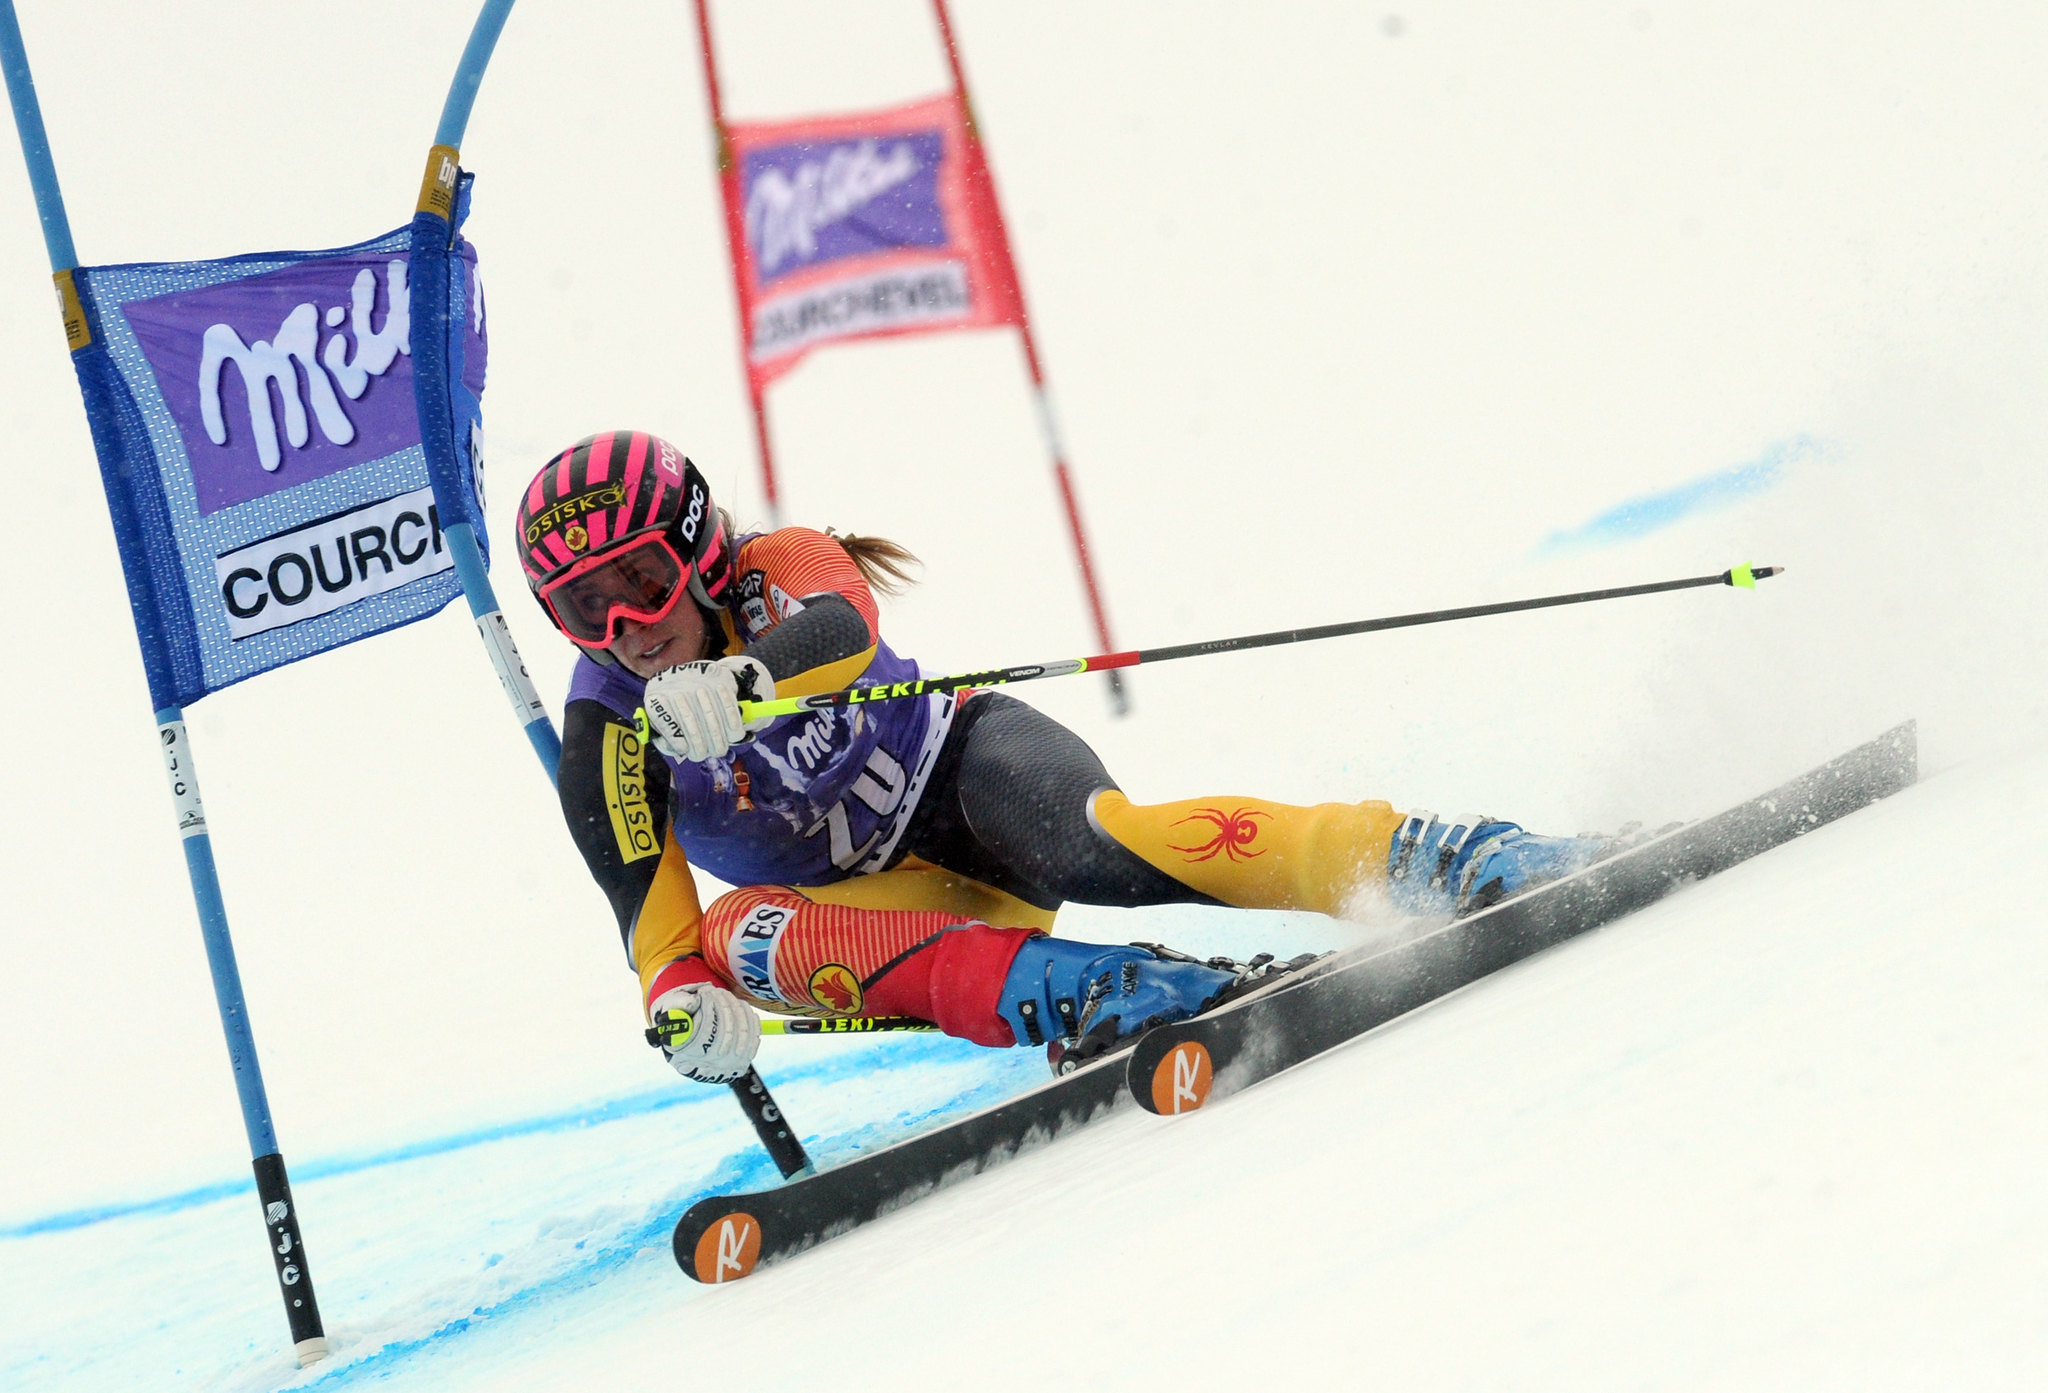 Marie-Michèle Gagnon during World Cup giant slalom in Courchevel, France.